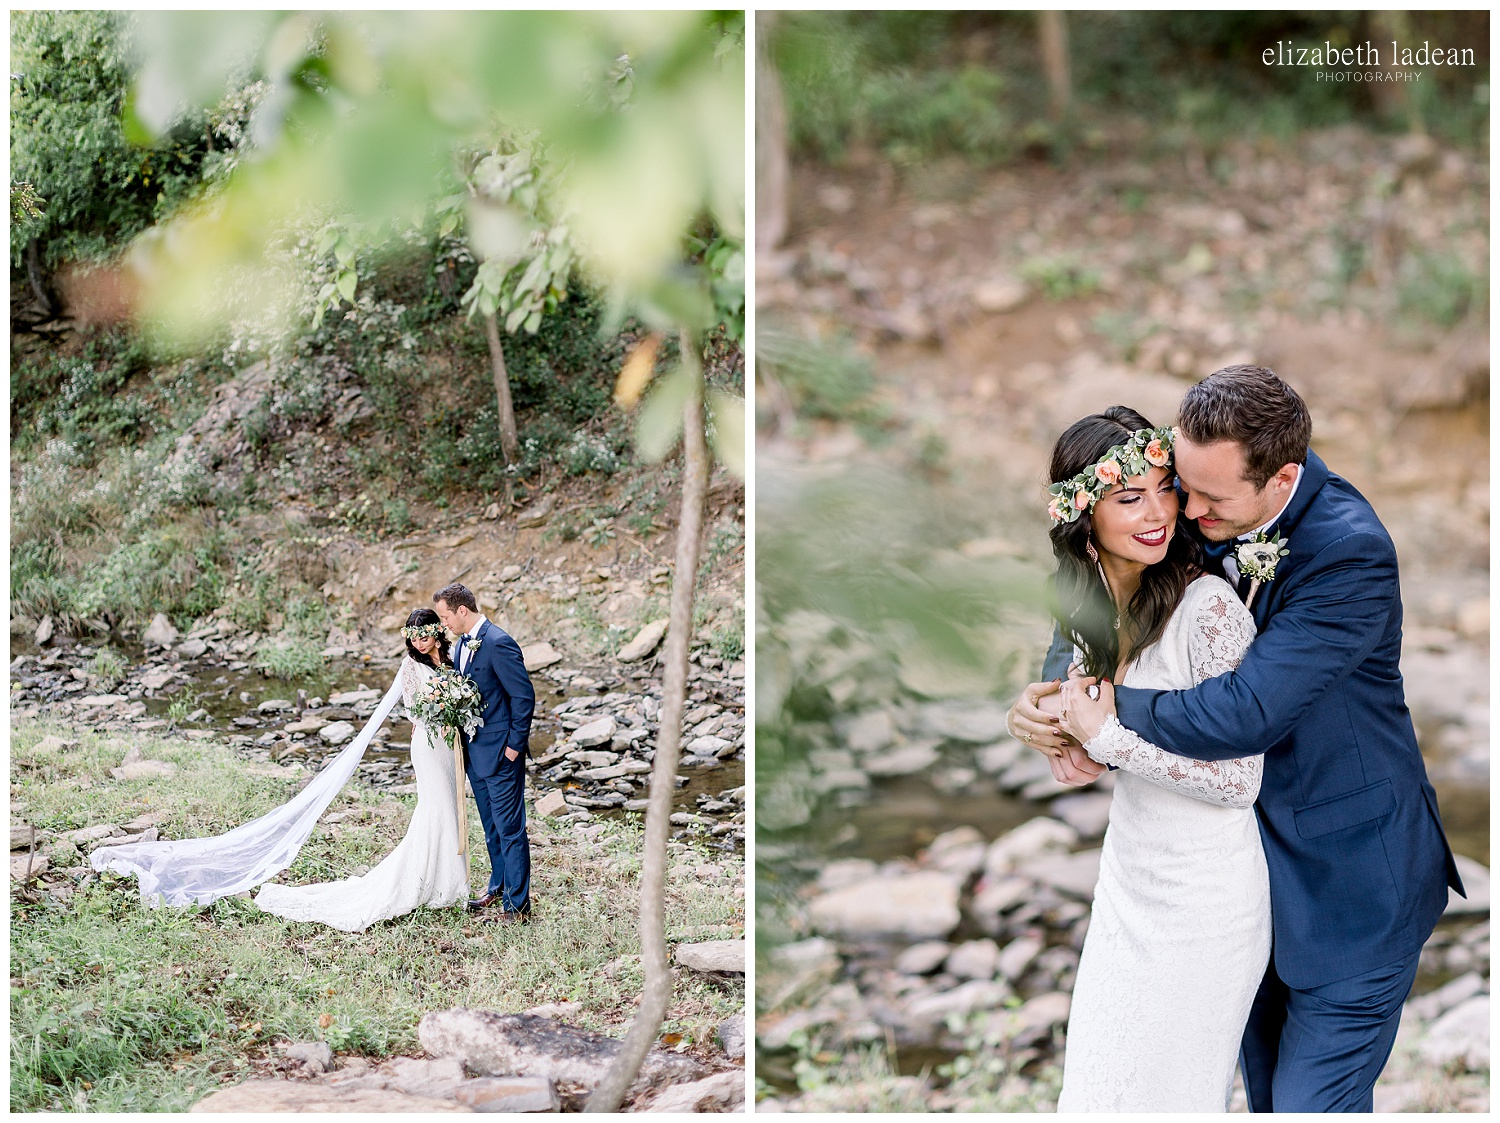 Willow-Creek-Blush-and-Blues-Outdoor-Wedding-Photography-S+Z2018-elizabeth-ladean-photography-photo_0606.jpg